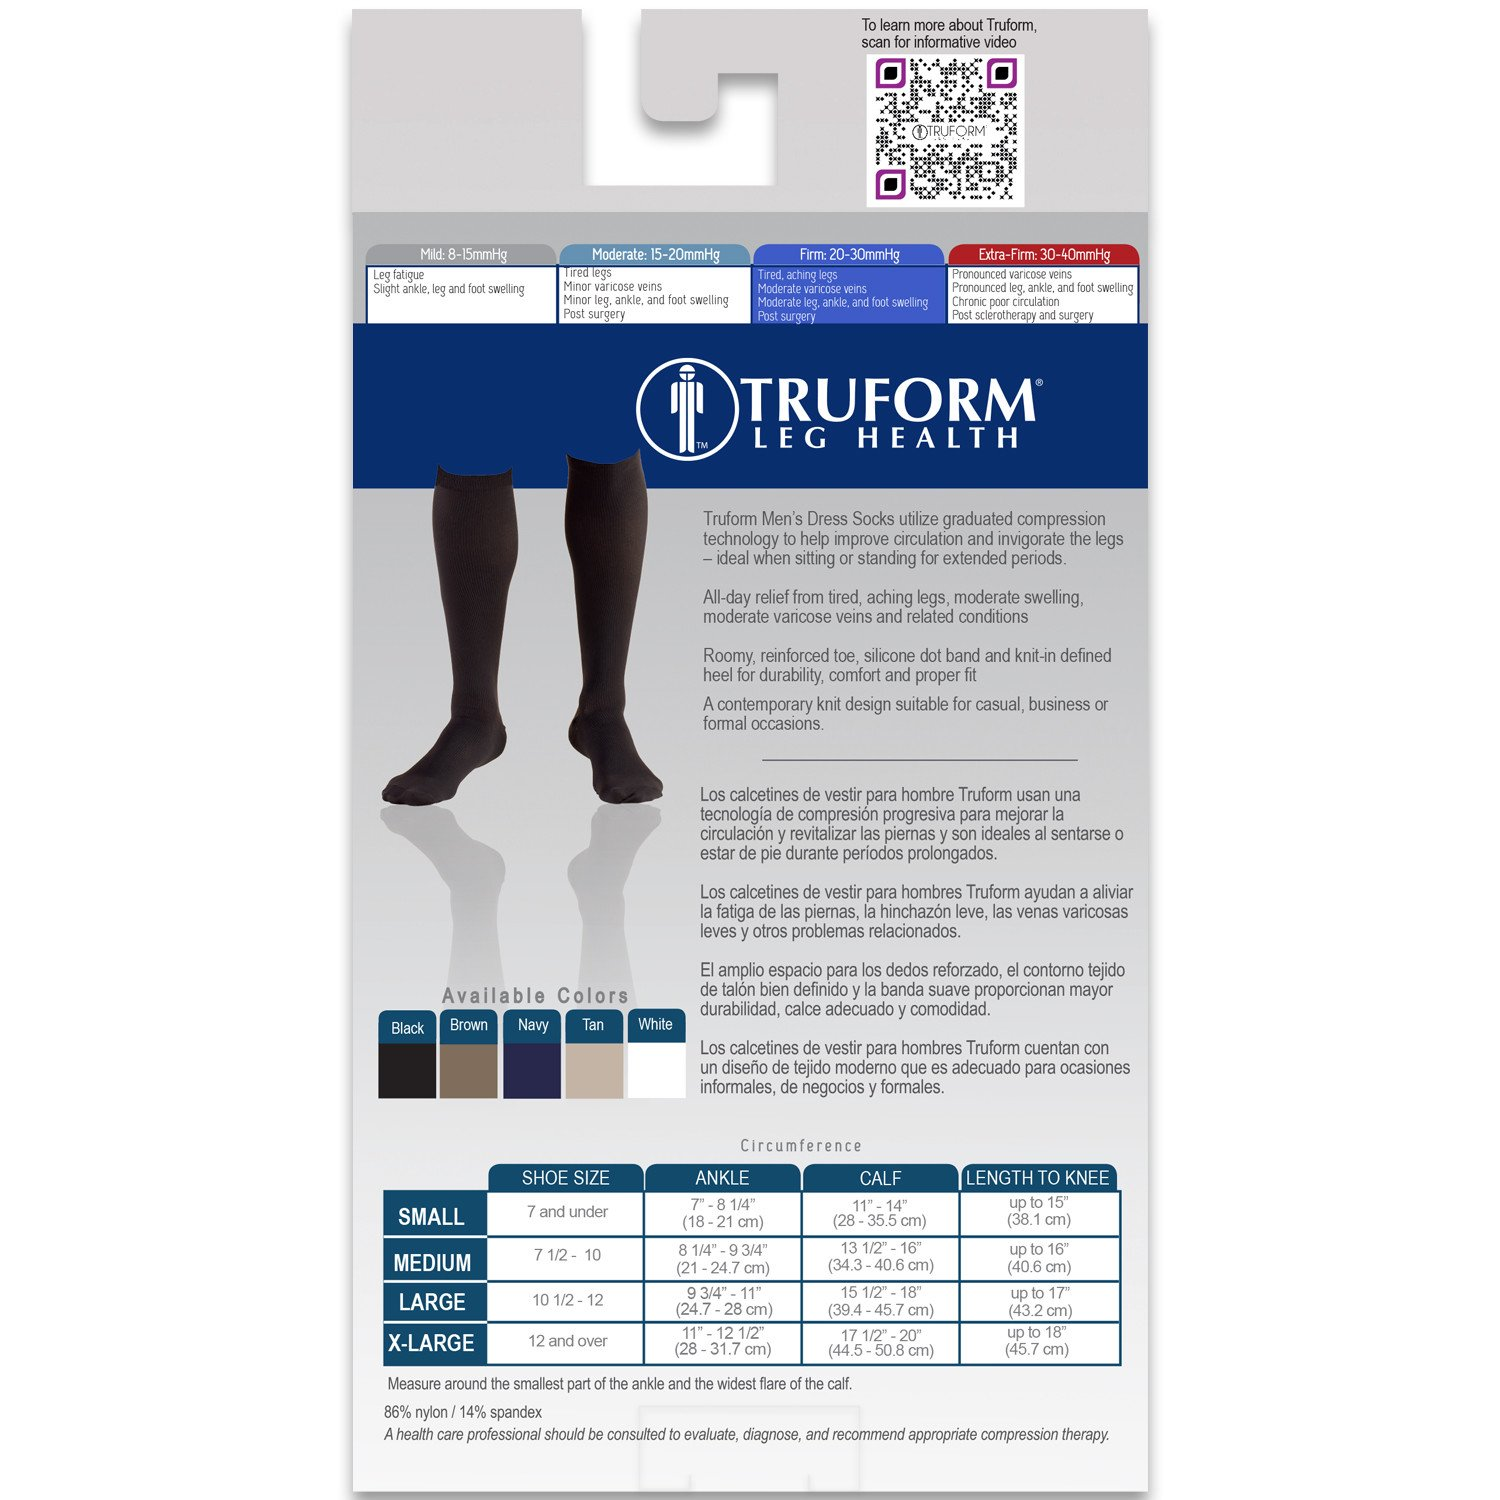 Amazon.com: Truform Mens Knee High 20-30 mmHg Compression Dress Socks, Brown, Medium: Health & Personal Care